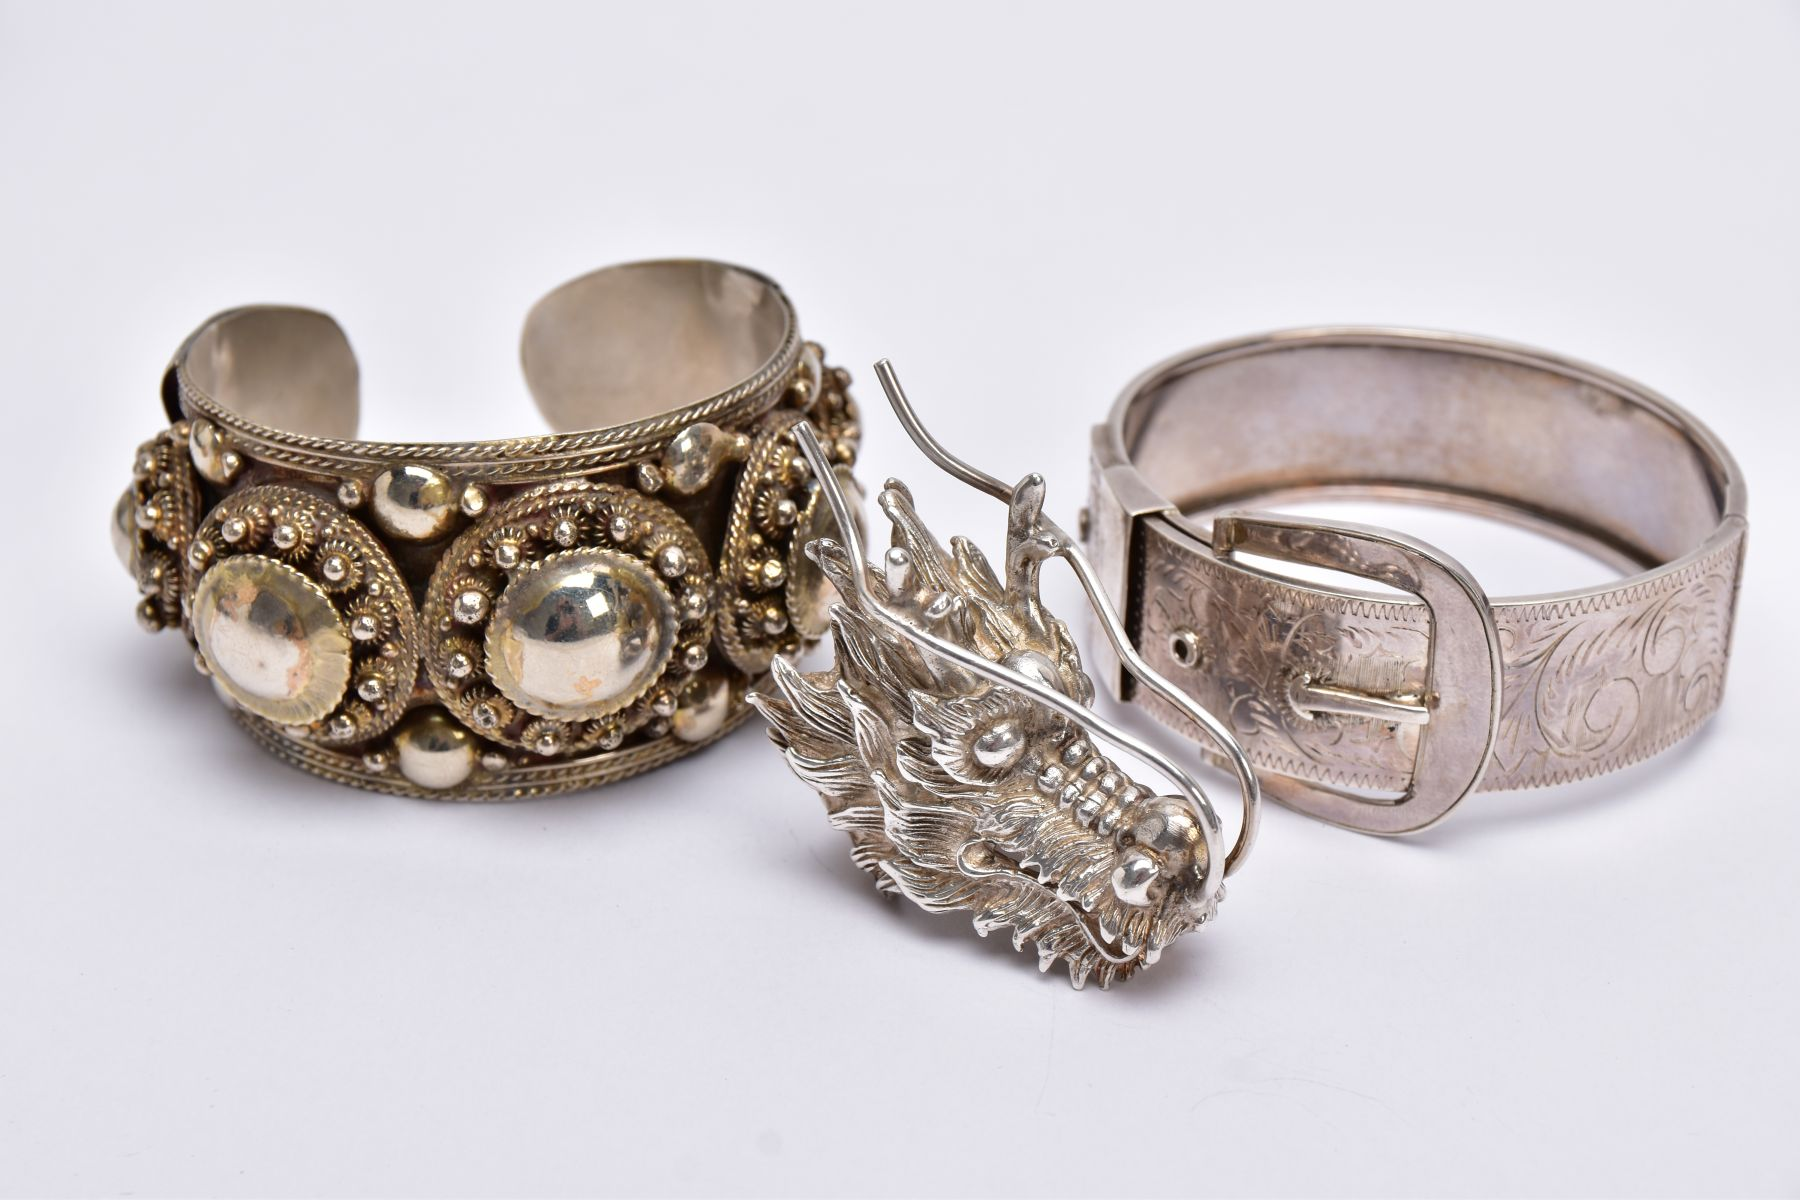 A WHITE METAL BANGLE, CUFF BANGLE AND A RING, the hinged bangle of a belt and buckle design, foliate - Image 2 of 5